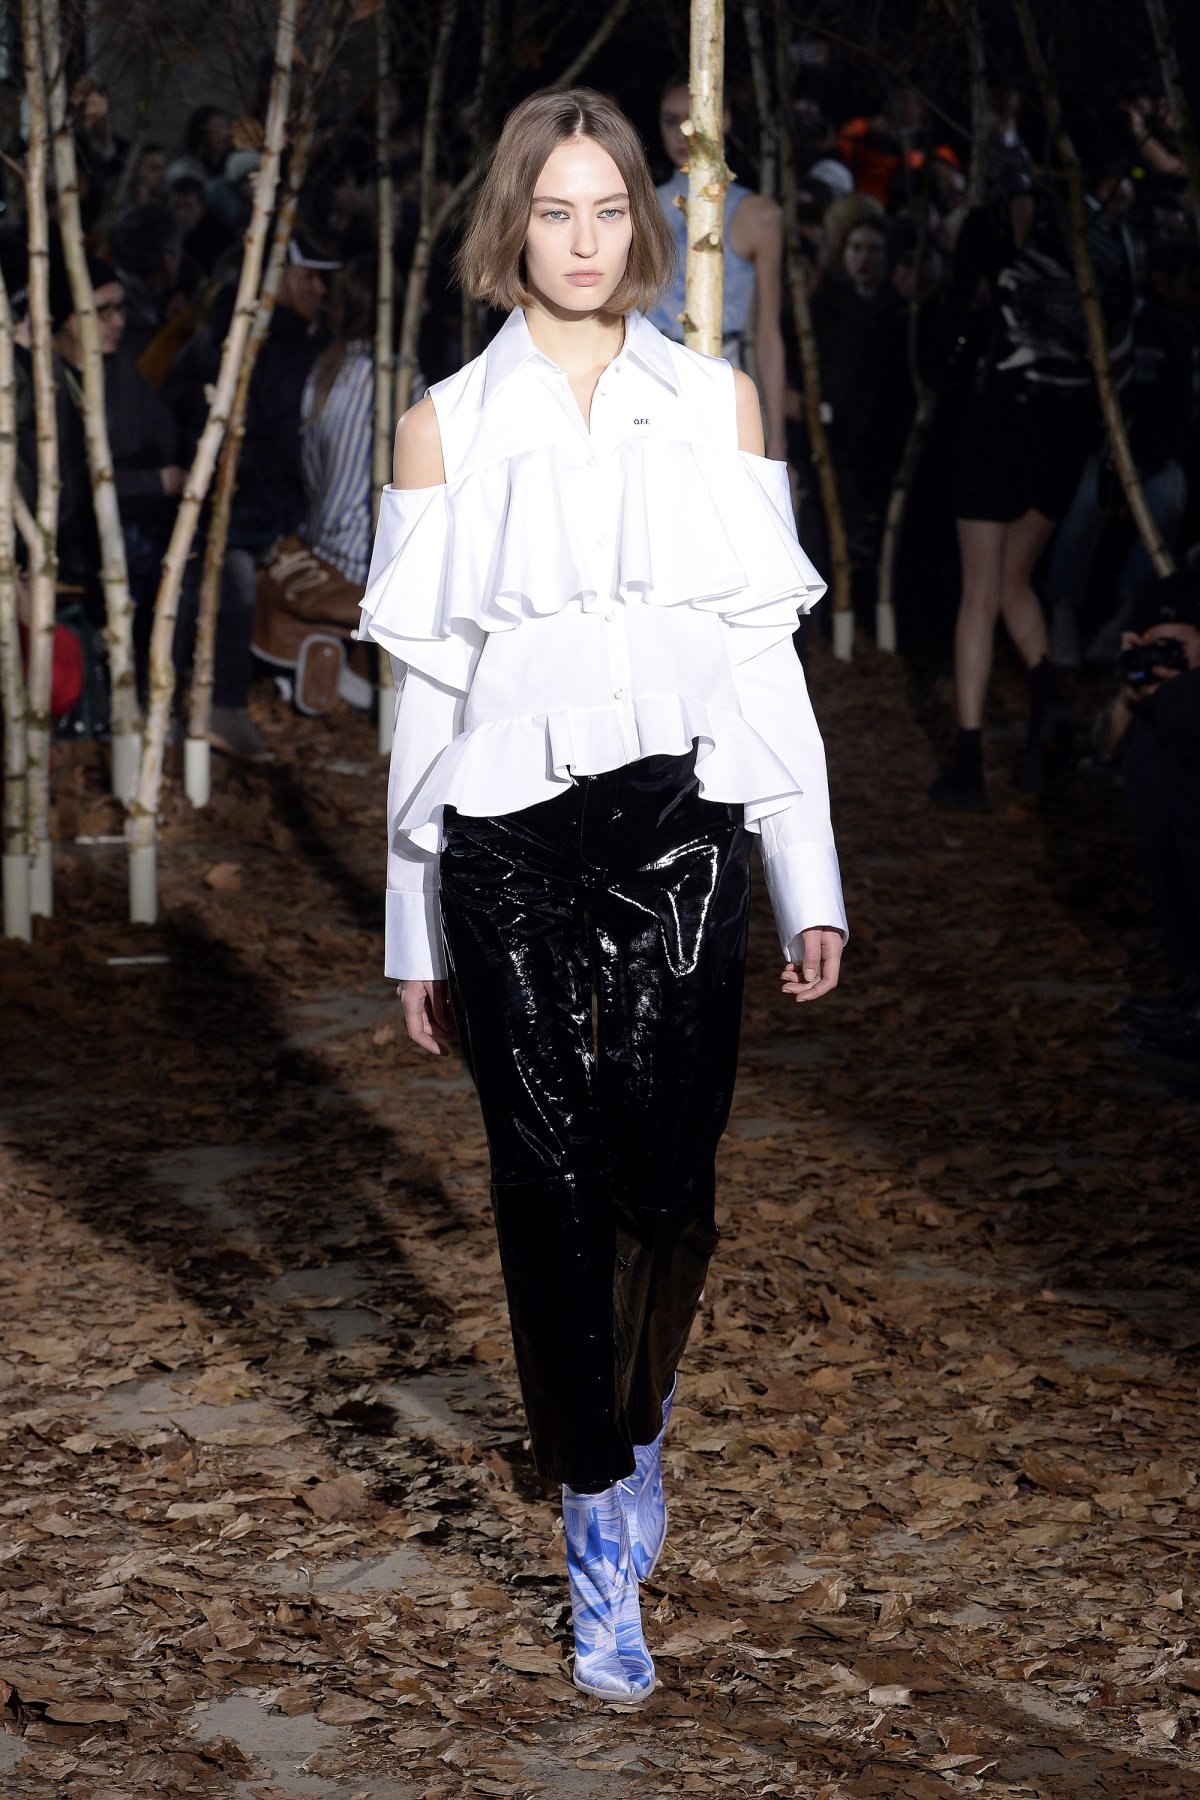 off_white_look_12_2017_aw_mens.jpeg